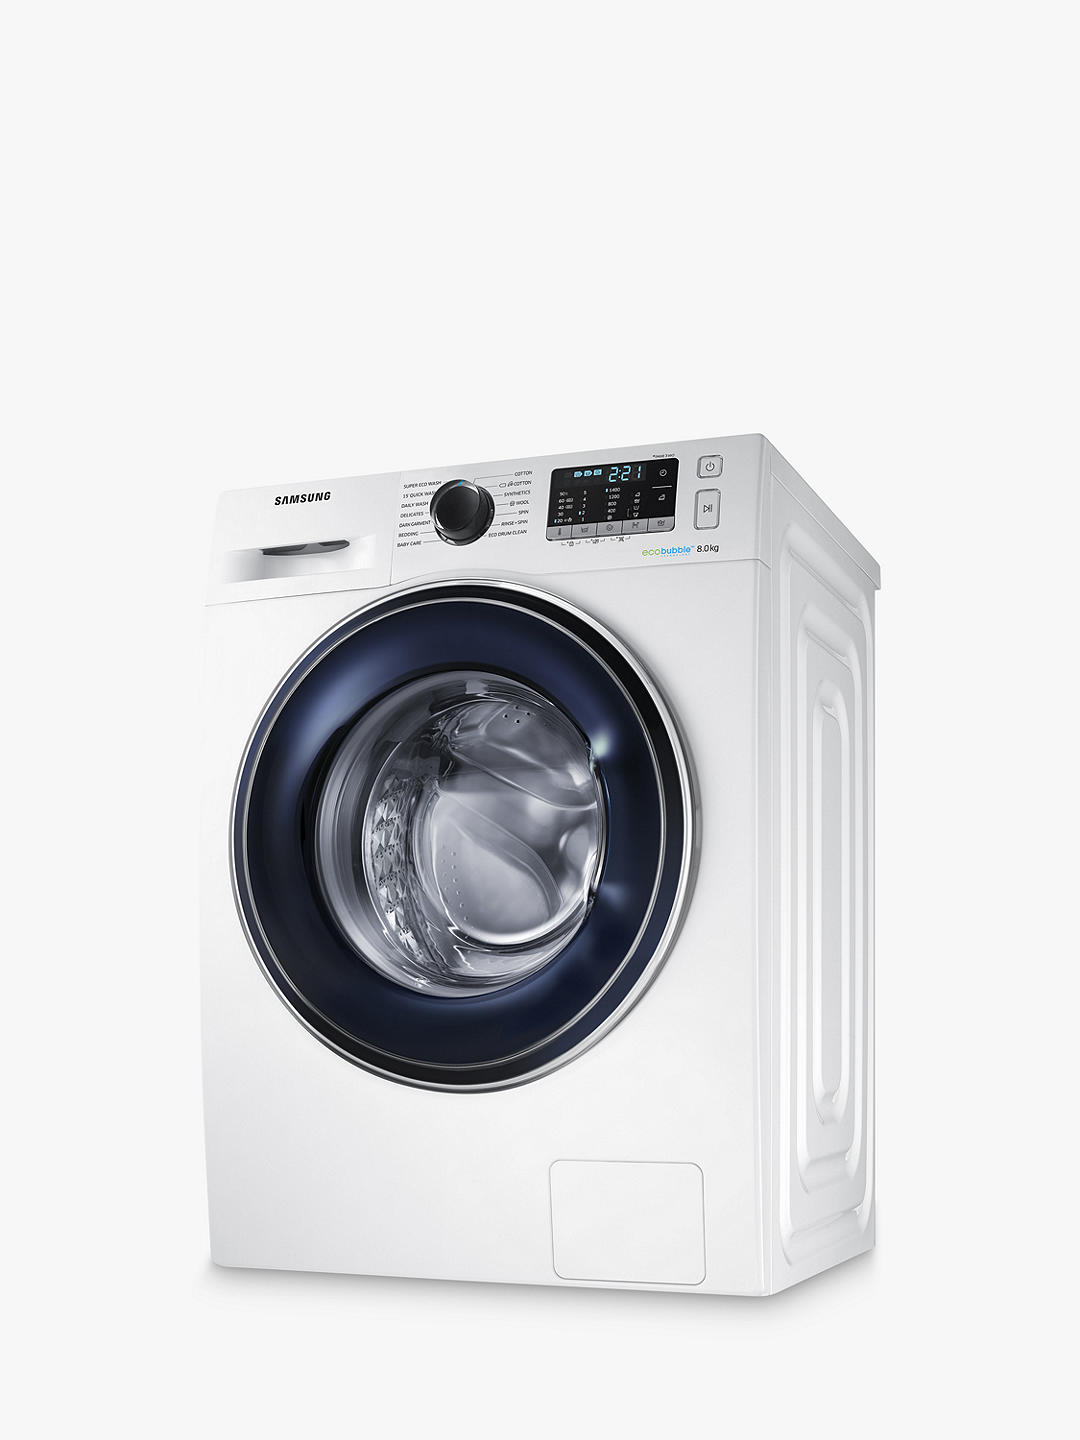 Buy Samsung WW80J5555FW ecobubble™ Freestanding Washing Machine, 8kg Load, A+++ Energy Rating, 1400rpm Spin, White Online at johnlewis.com